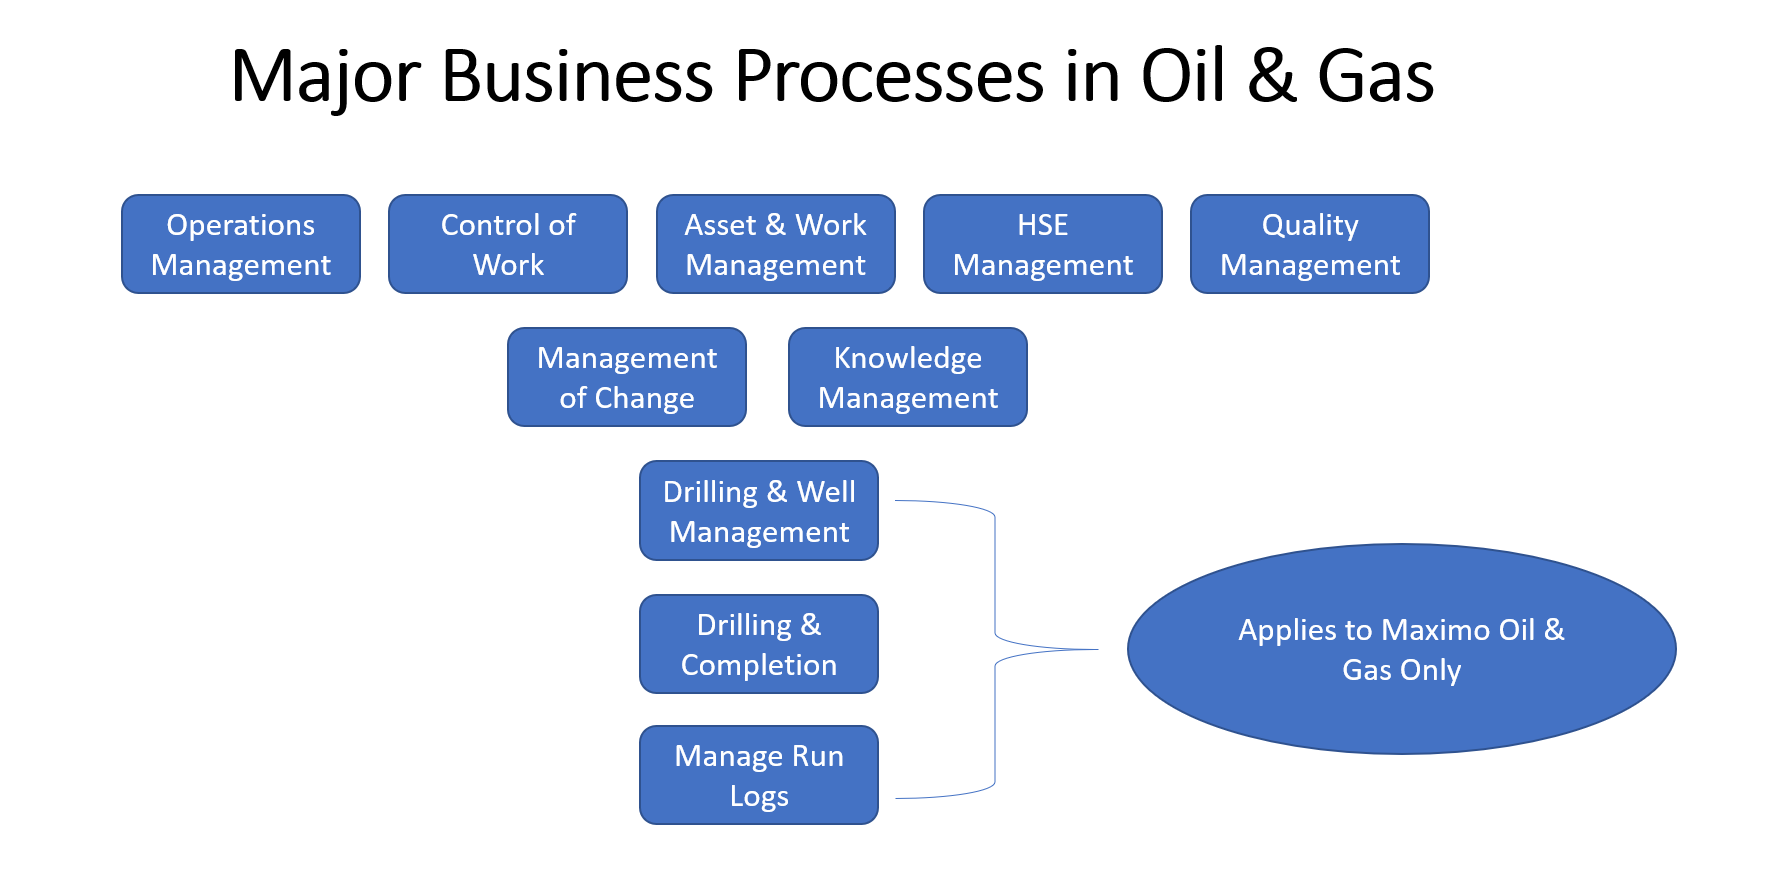 Maximo Oil & Gas, Maximo HSE Manager, Overview and Product Features